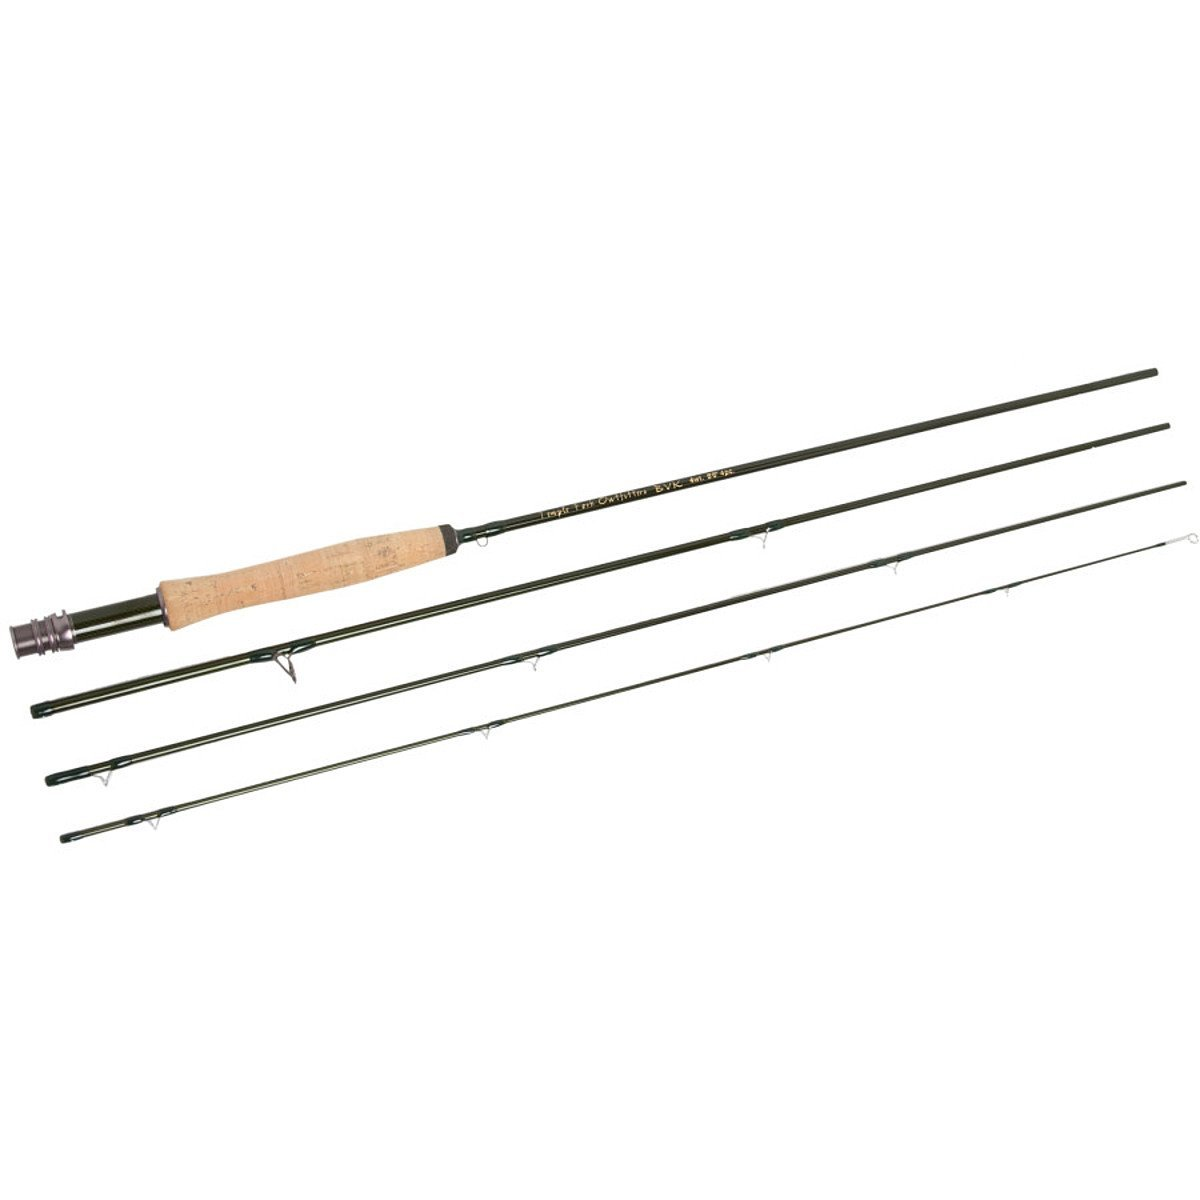 TFO BVK Series Fly Fishing Rod